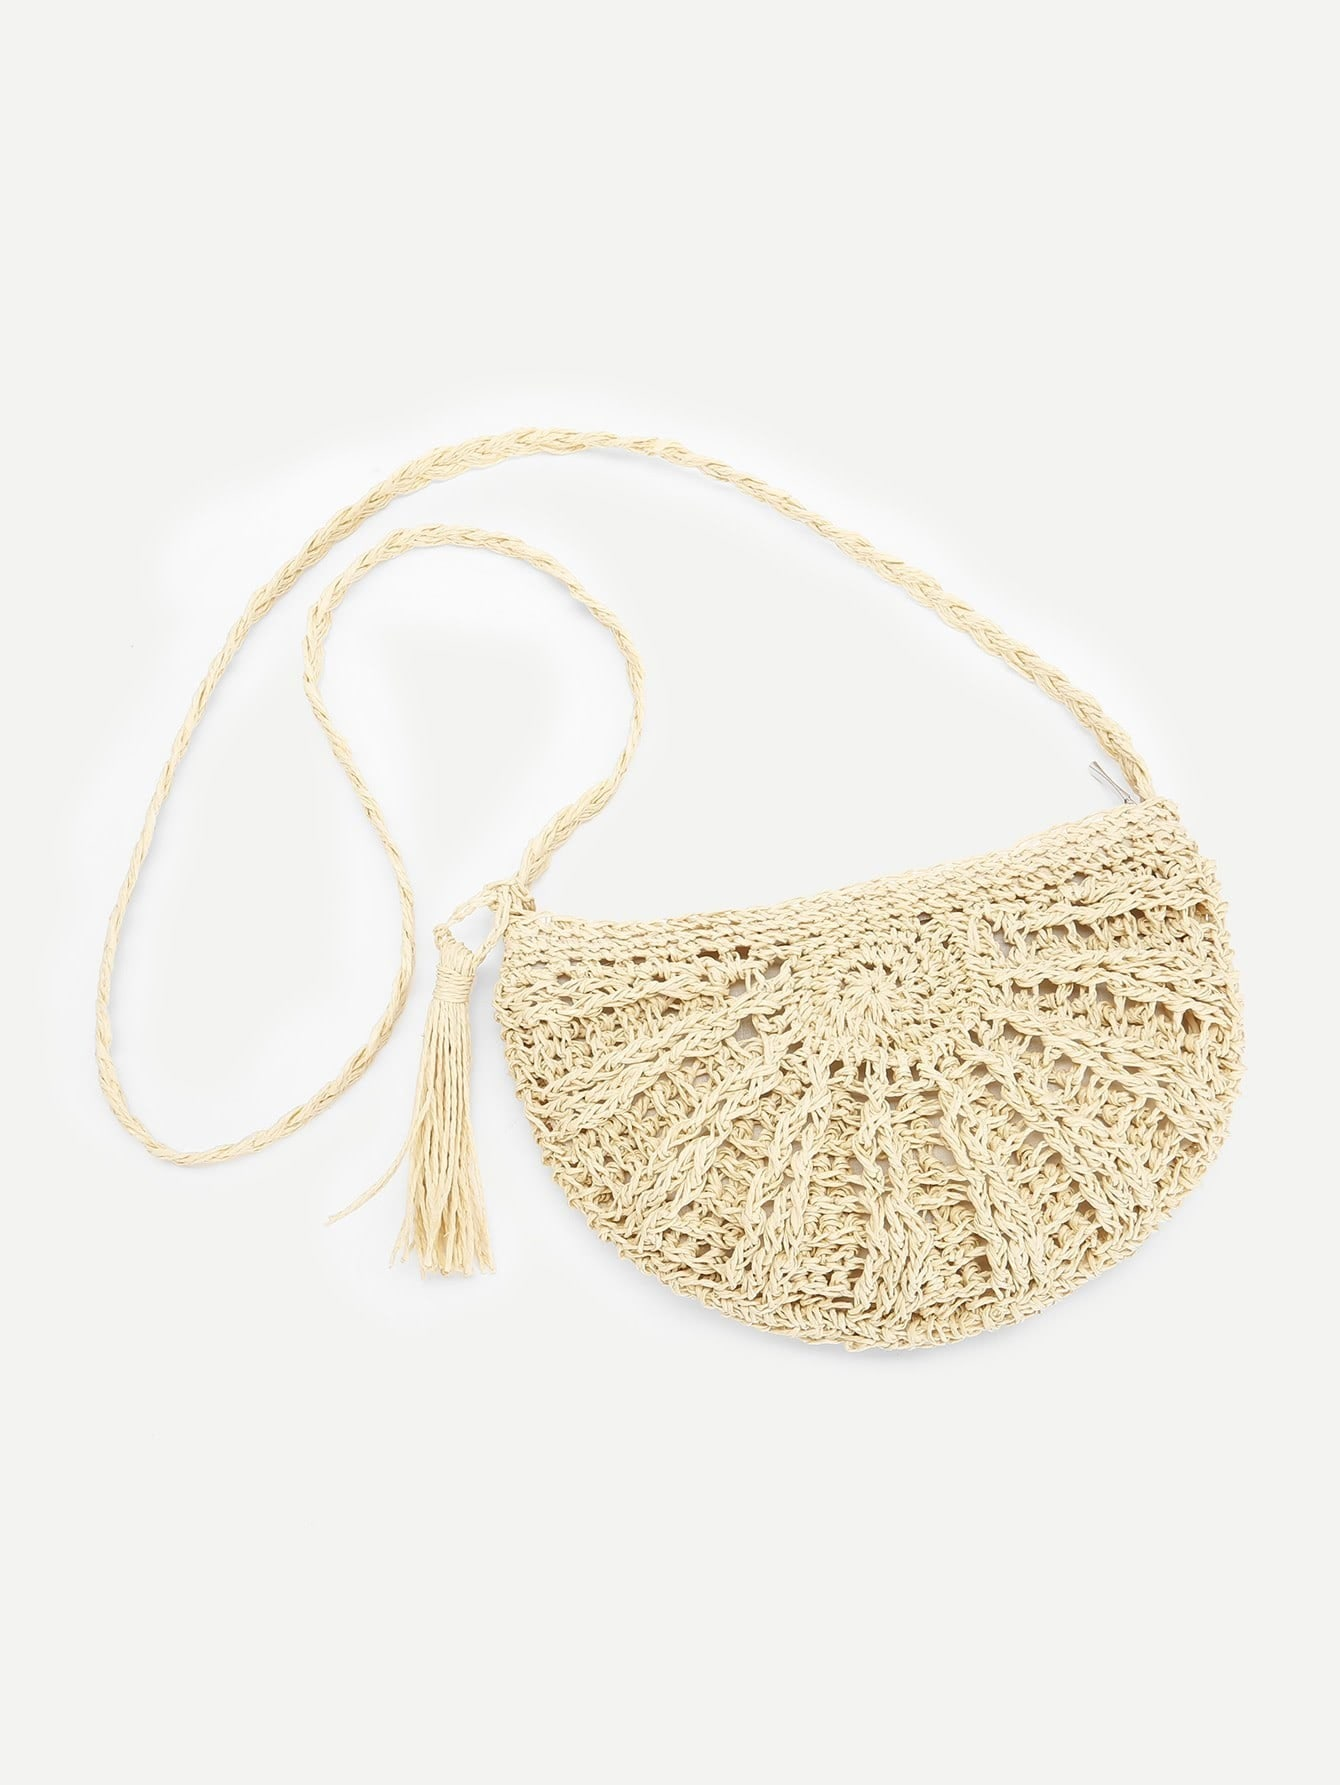 Tassel Detail Straw Crossbody Bag tassel detail straw crossbody bag